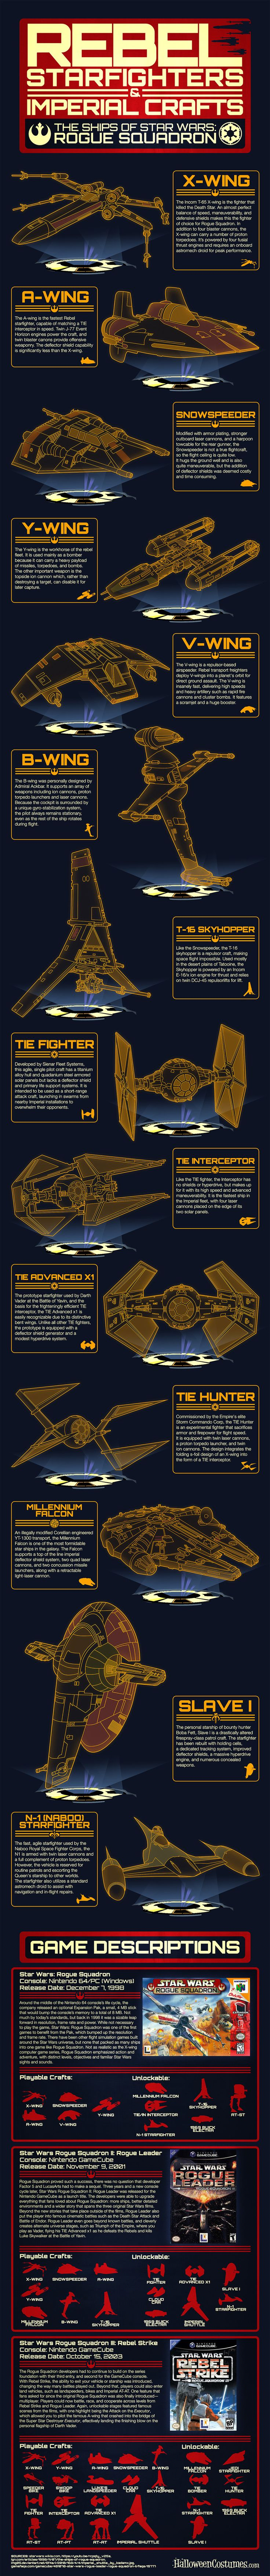 Rebel Starfighters and Imperial Crafts